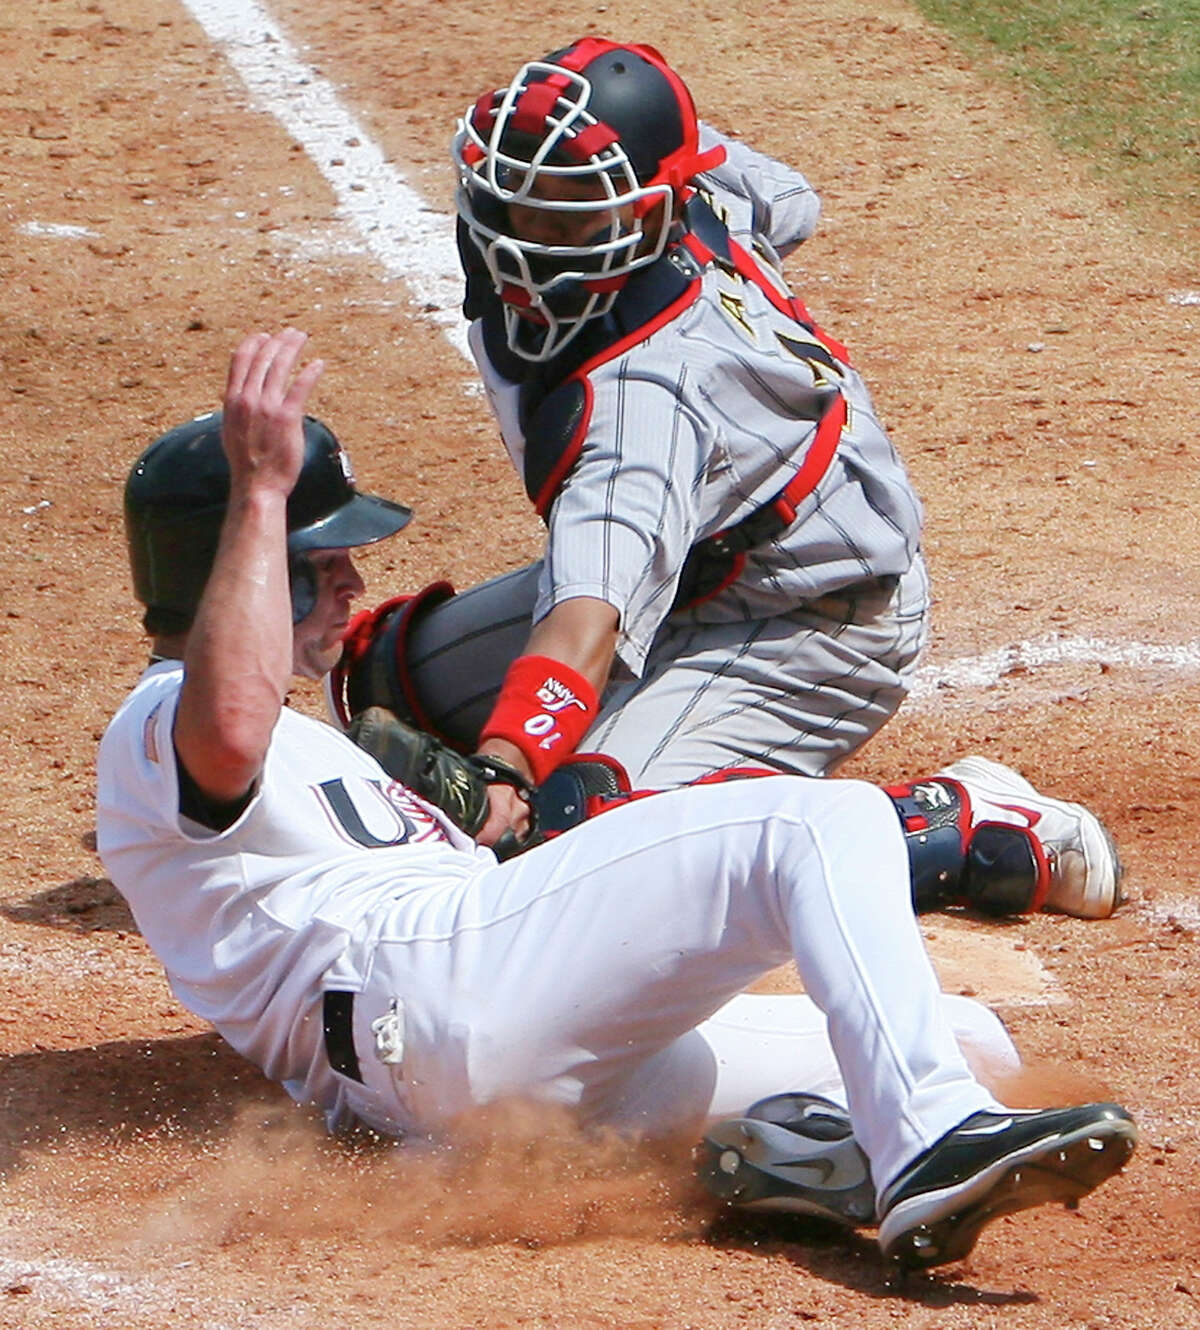 USA's Jayson Nix is tagged out as he slides into home by Japan's Shinnosuke Abe during the bronze medal game at the 2008 Beijing Olympics Saturday Aug 23, 2008 in Beijing, China. The USA won 8-4 to win the bronze medal. (PHOTO BY EDWARD A. ORNELAS/eornelas@express-news.net)